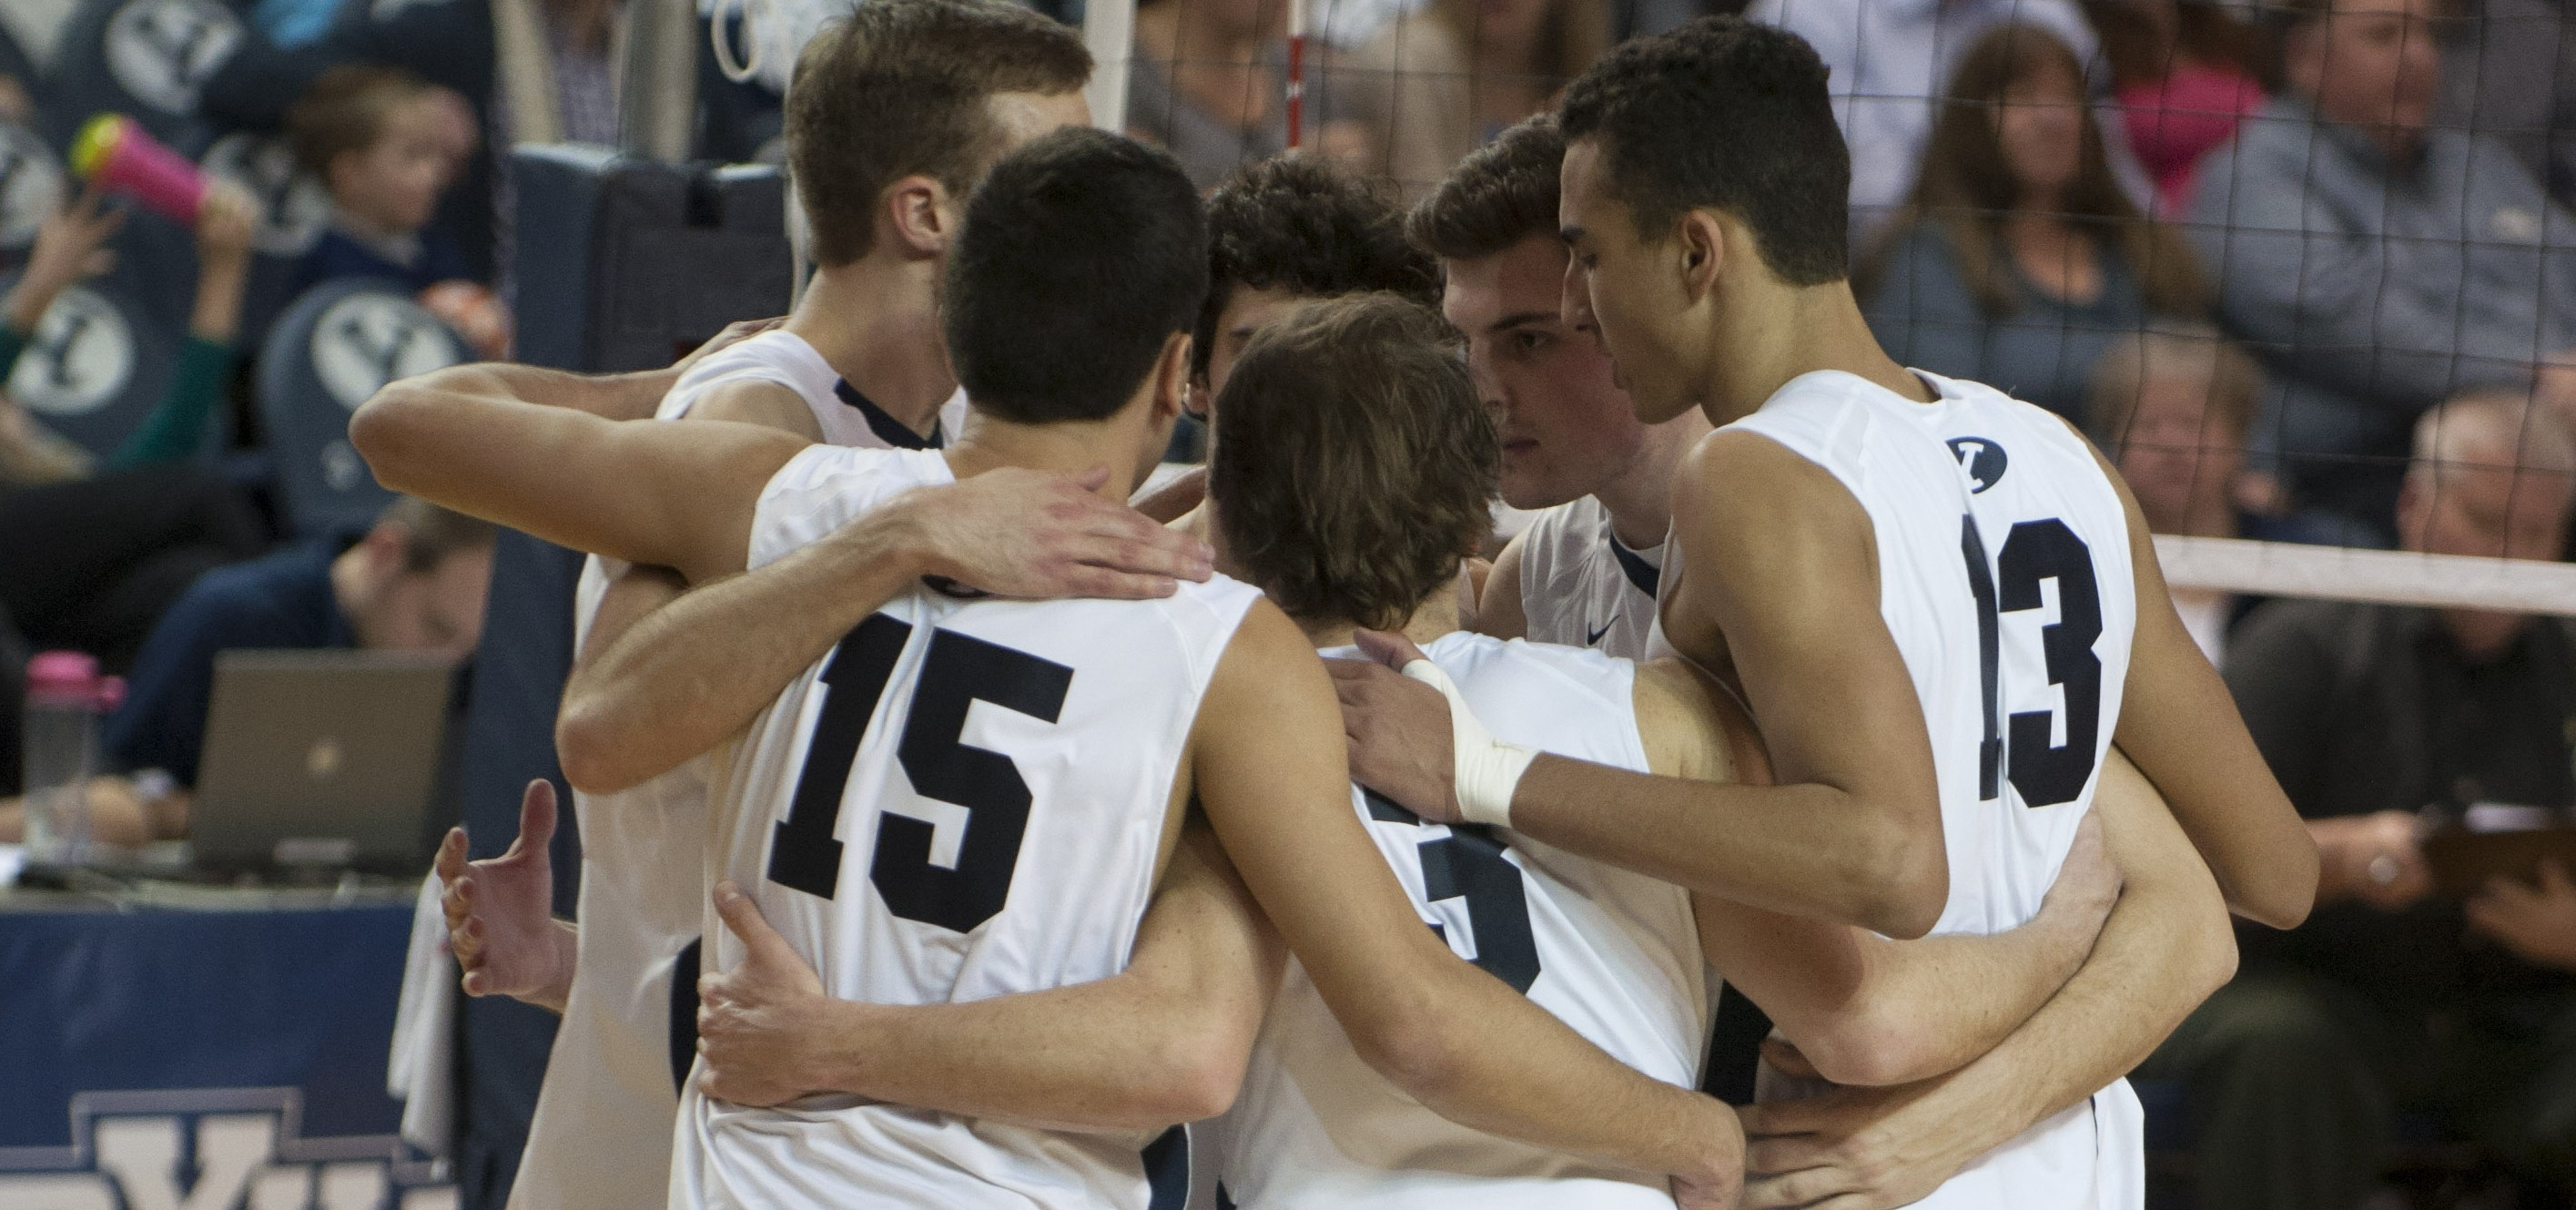 The BYU men's volleyball team huddles together after a point. (Photo by Whitnie Soelberg)